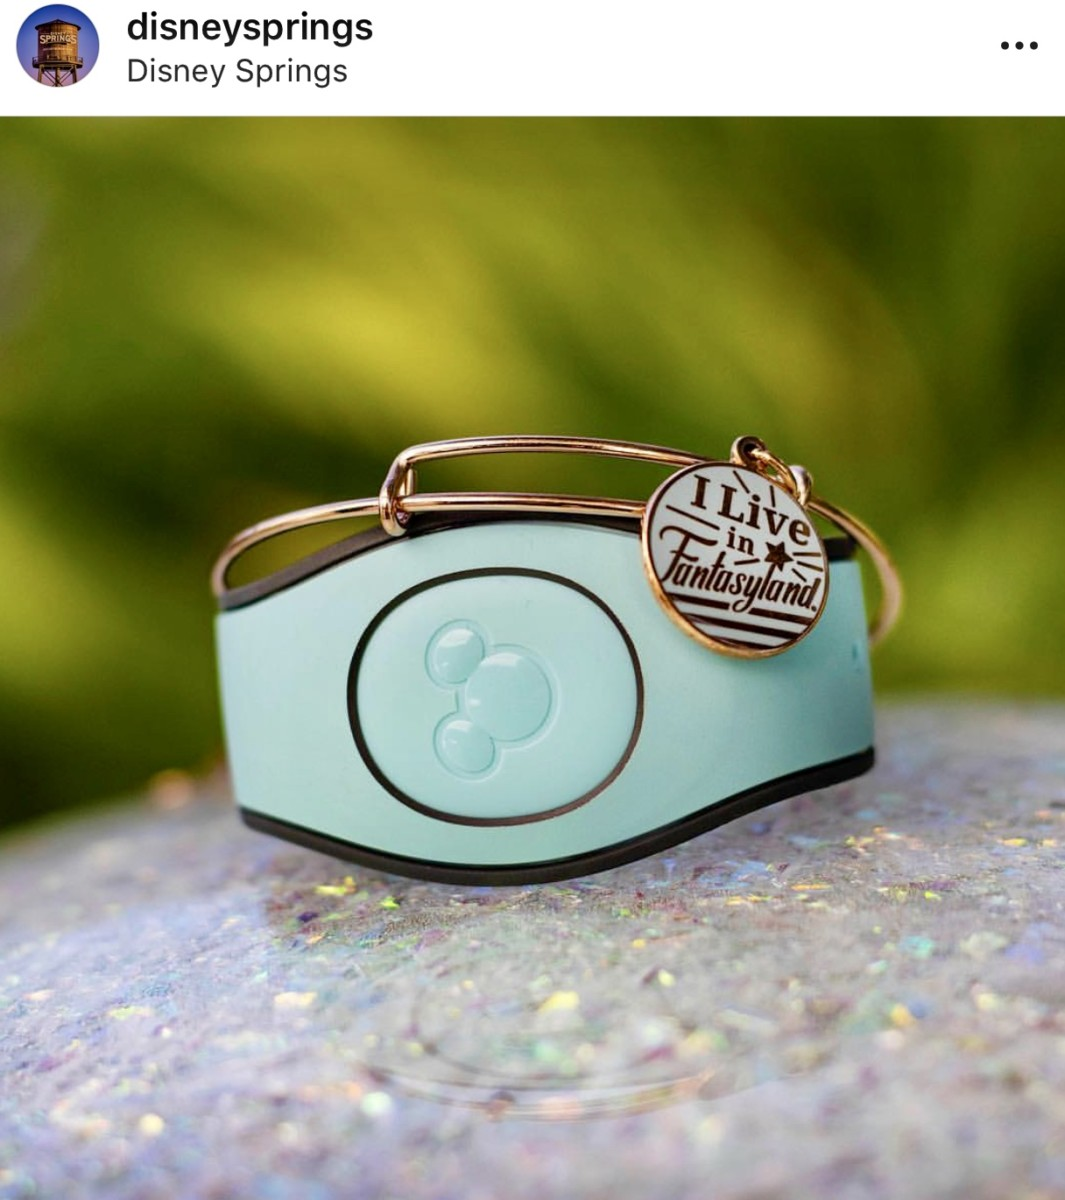 New MagicBand Colors Available at Disney Springs 4